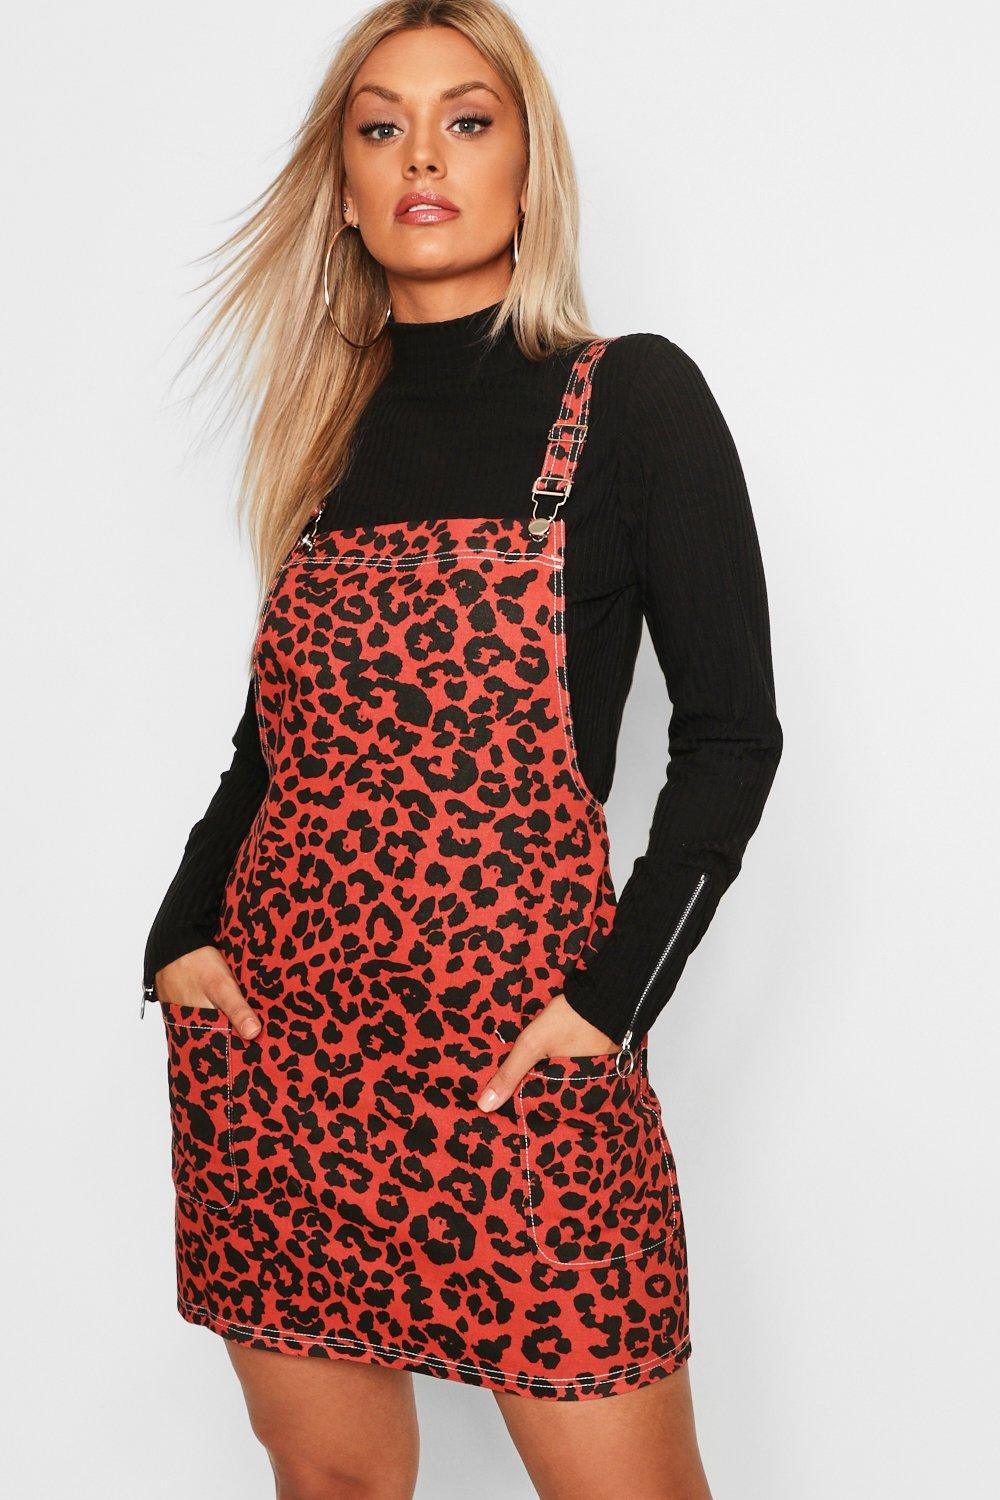 a67a6636a92 Boohoo Plus Leopard Print Dungaree Dress in Red - Lyst